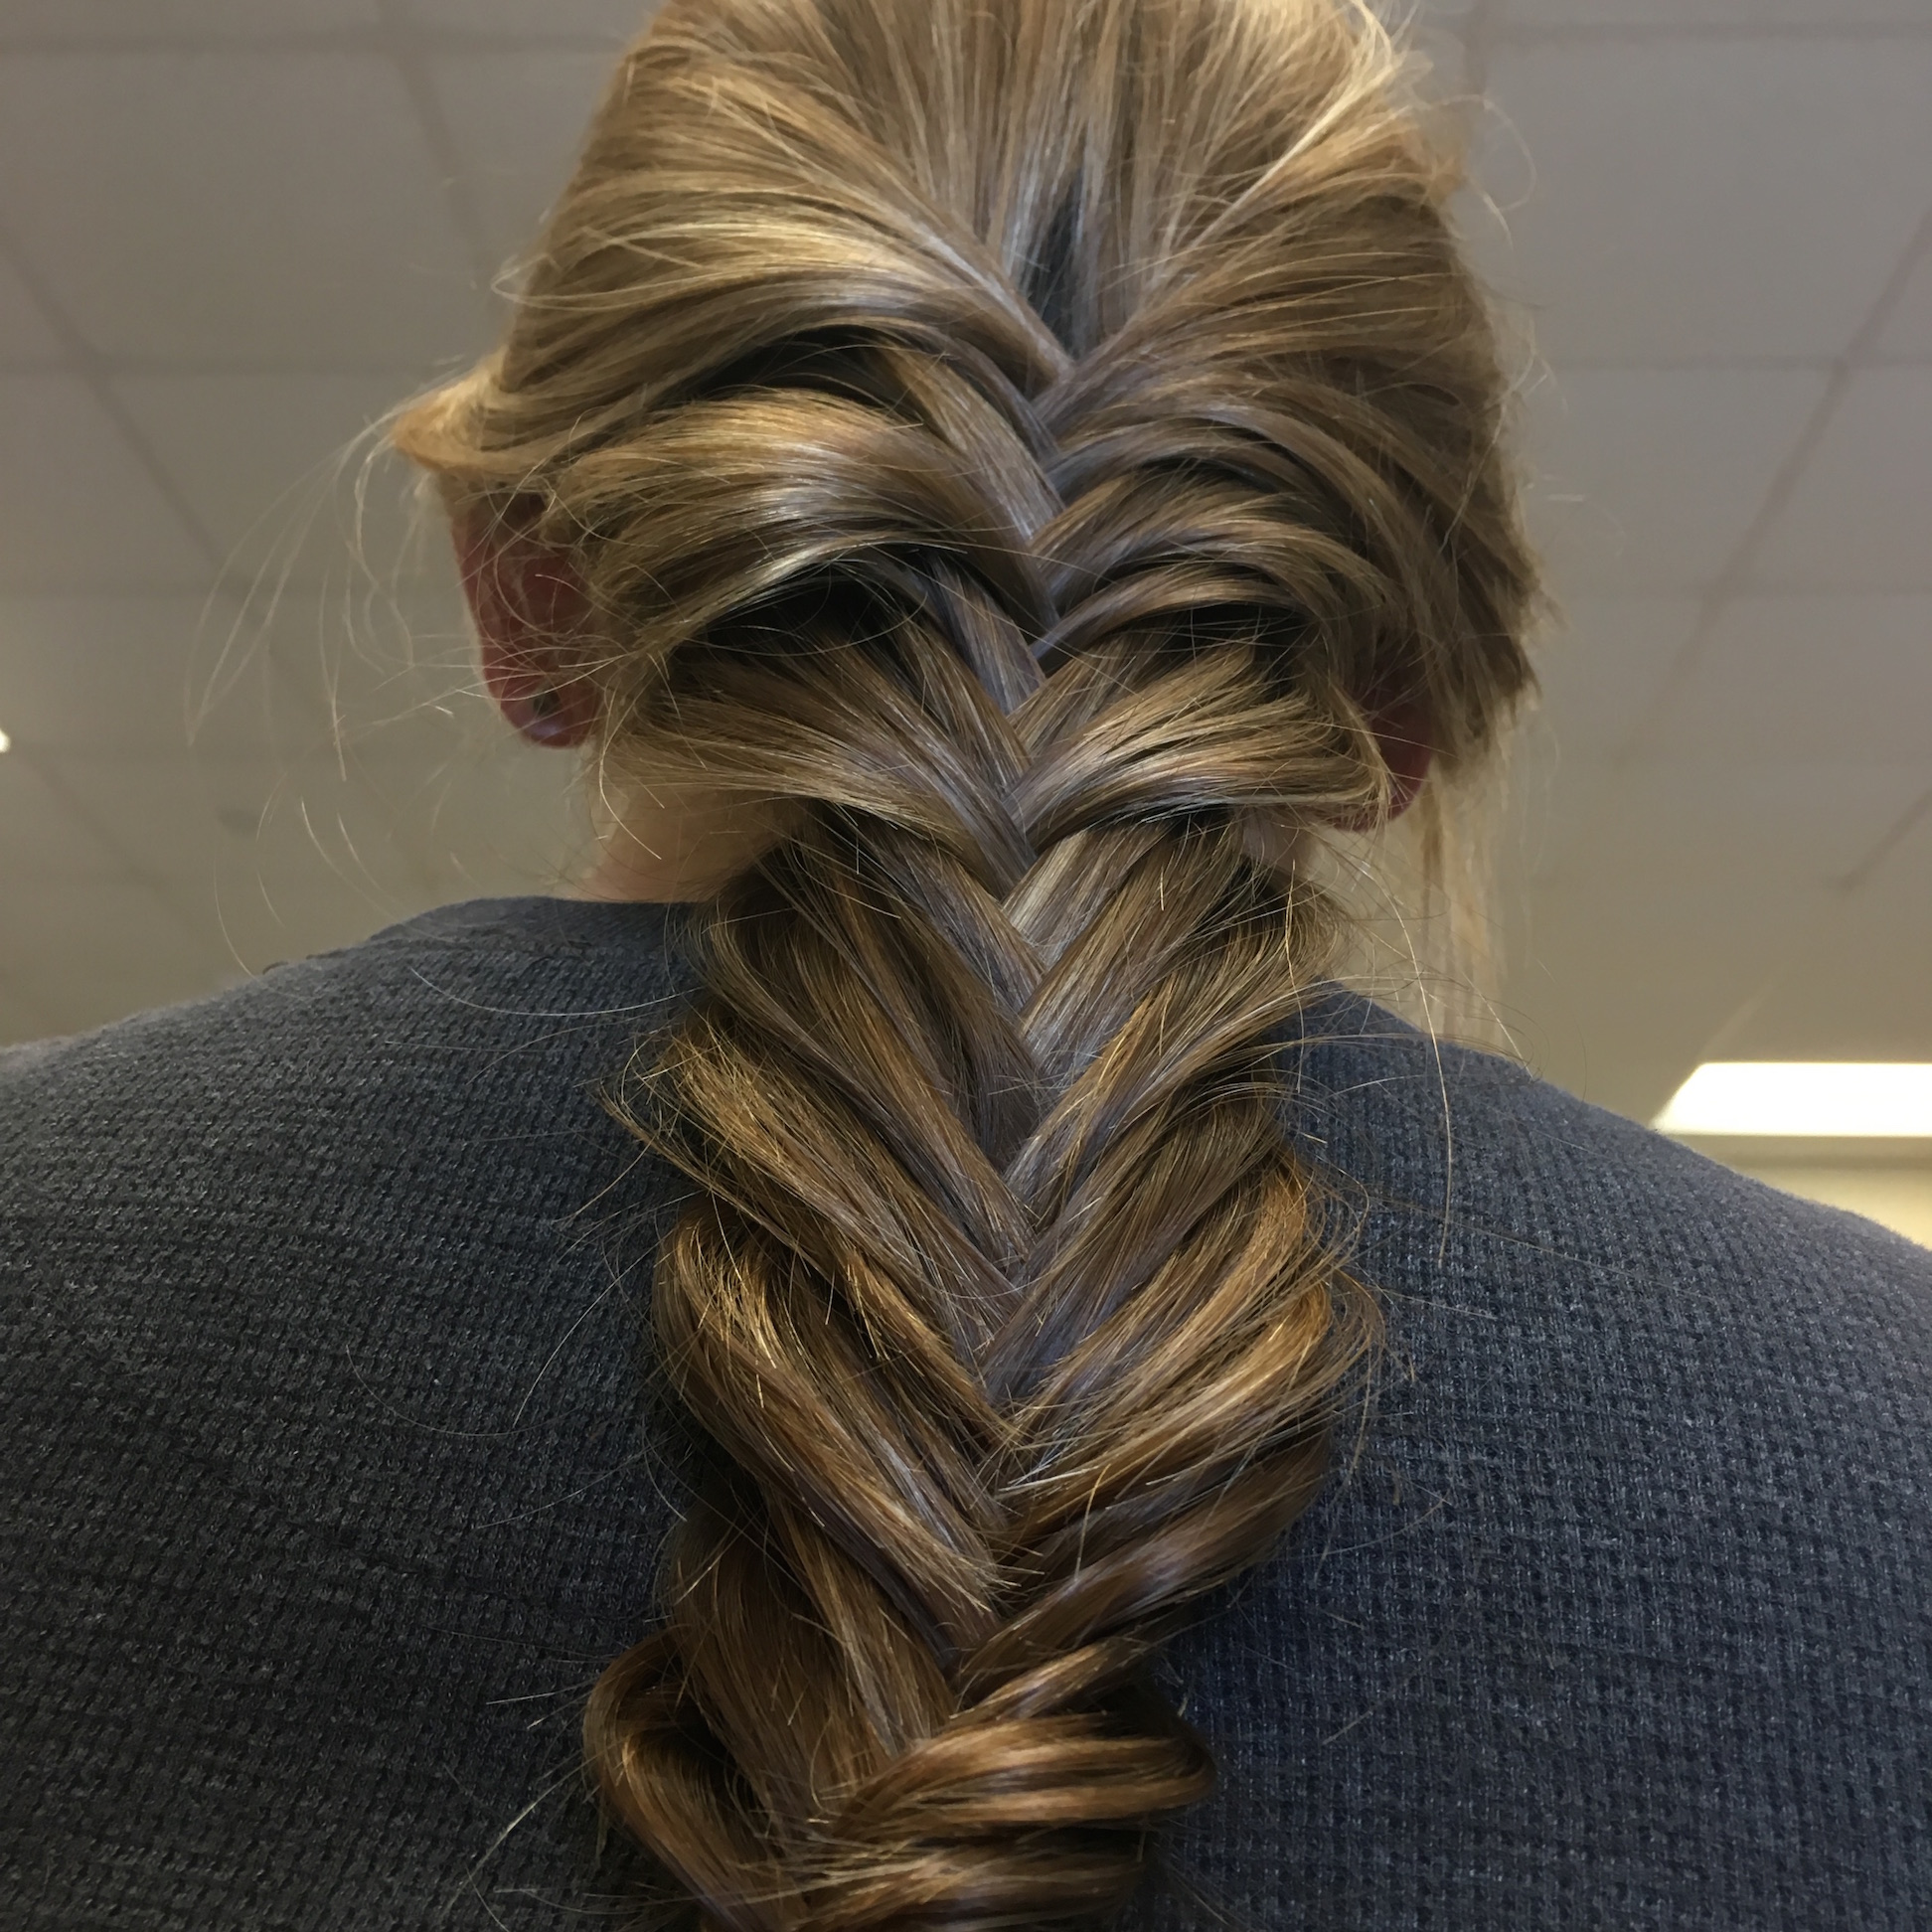 Try one of these braids next time you're having a bad hair day!